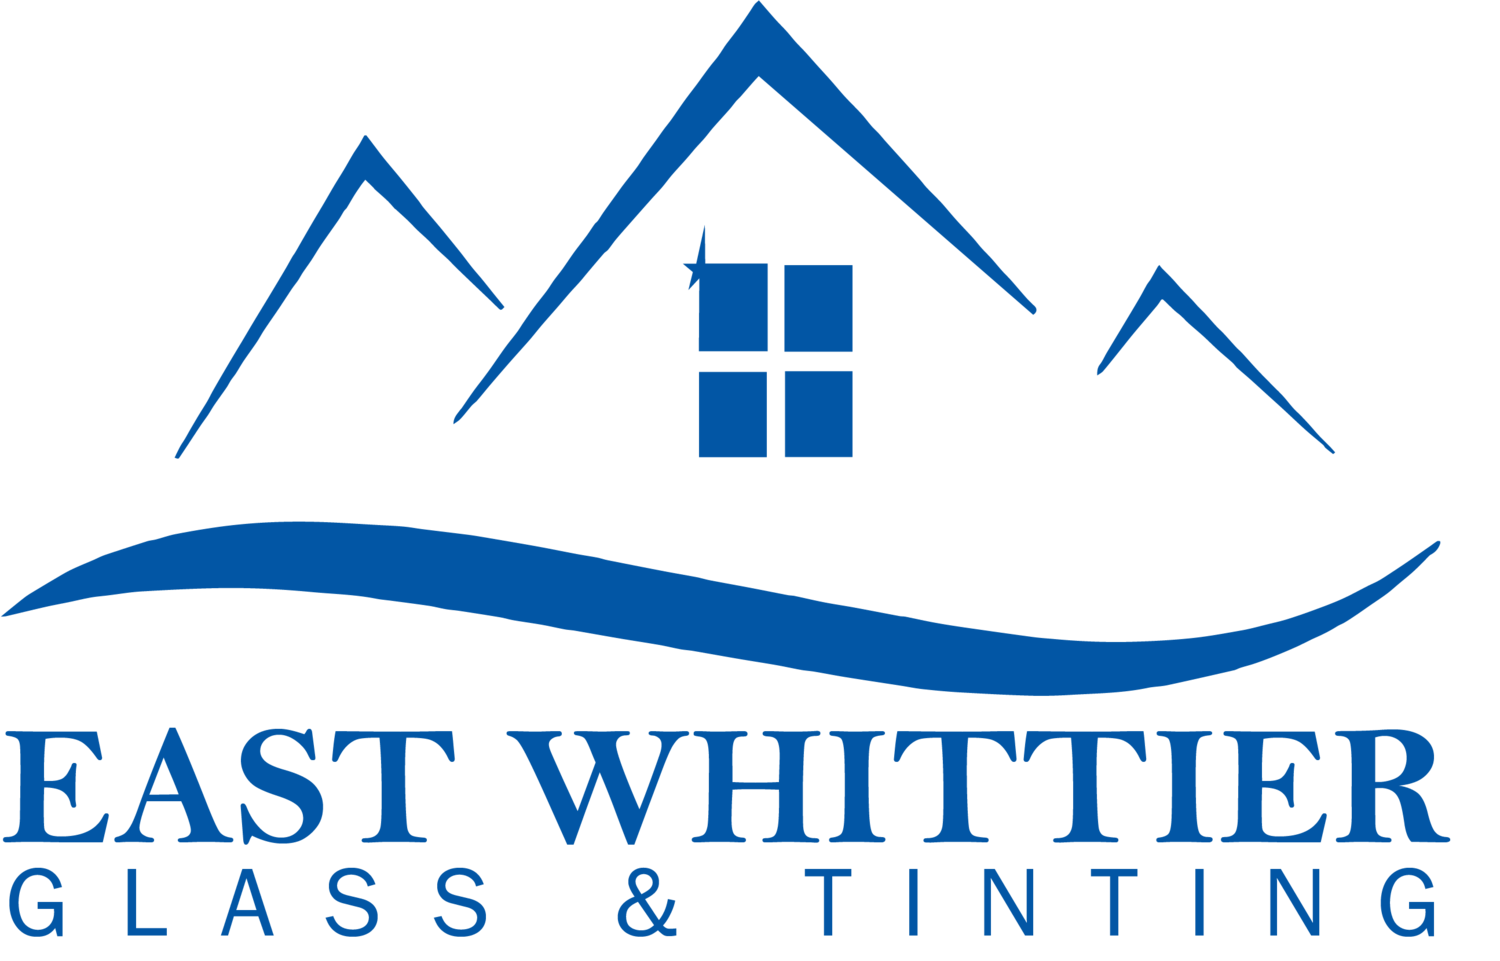 East Whittier Glass